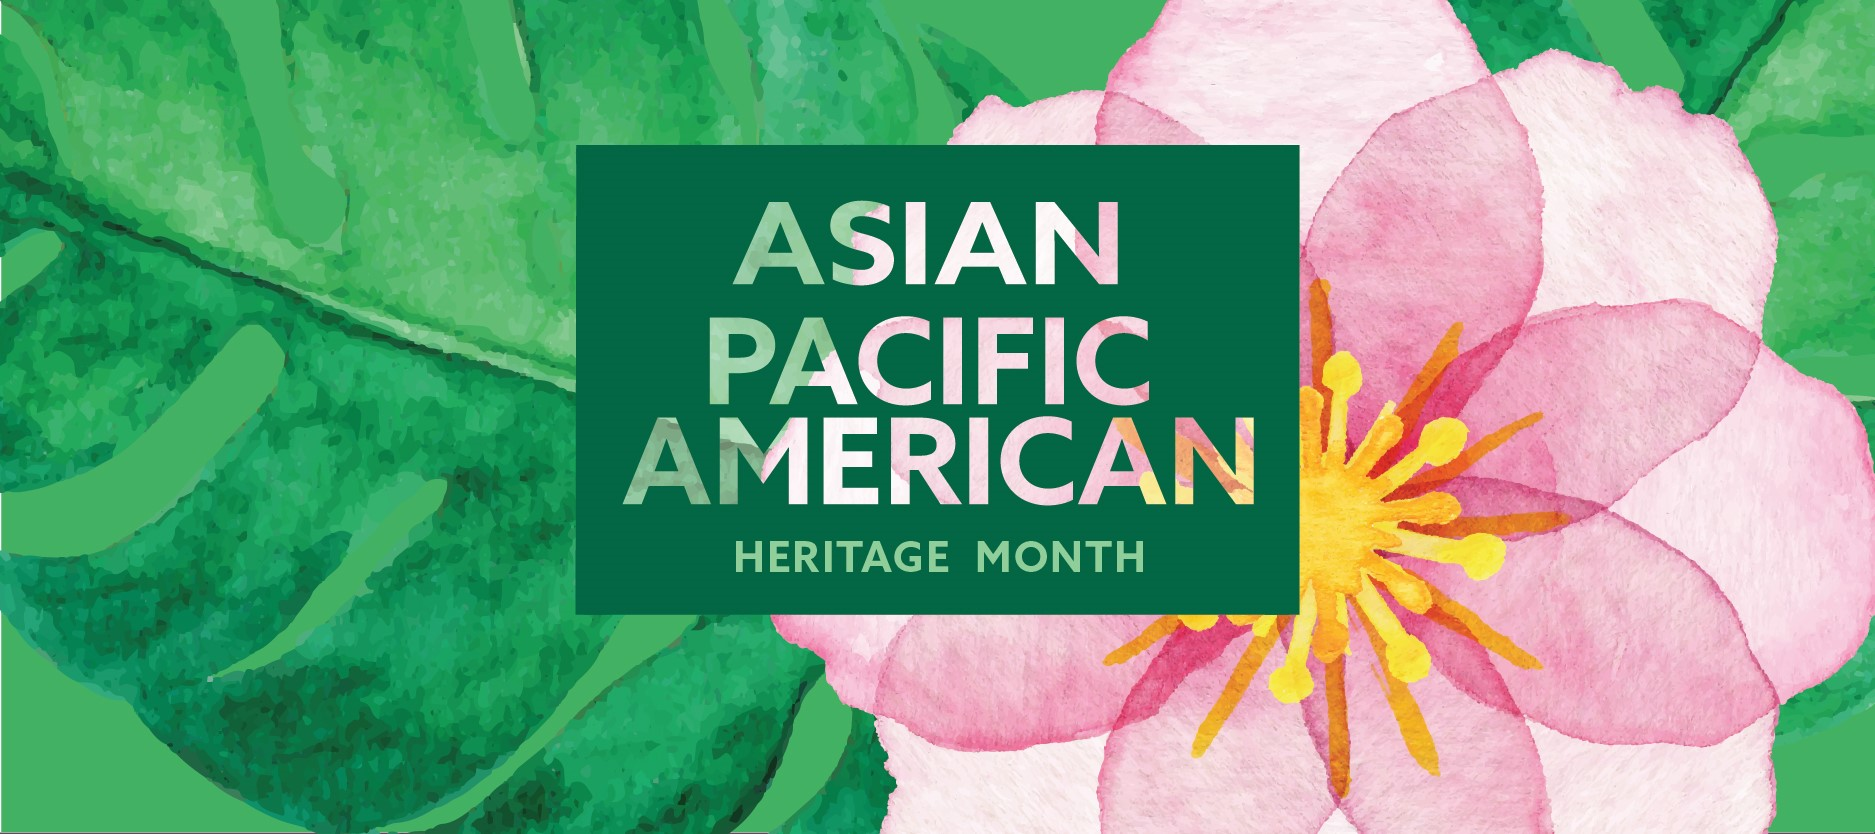 american 2018 pacific month Asian heritage